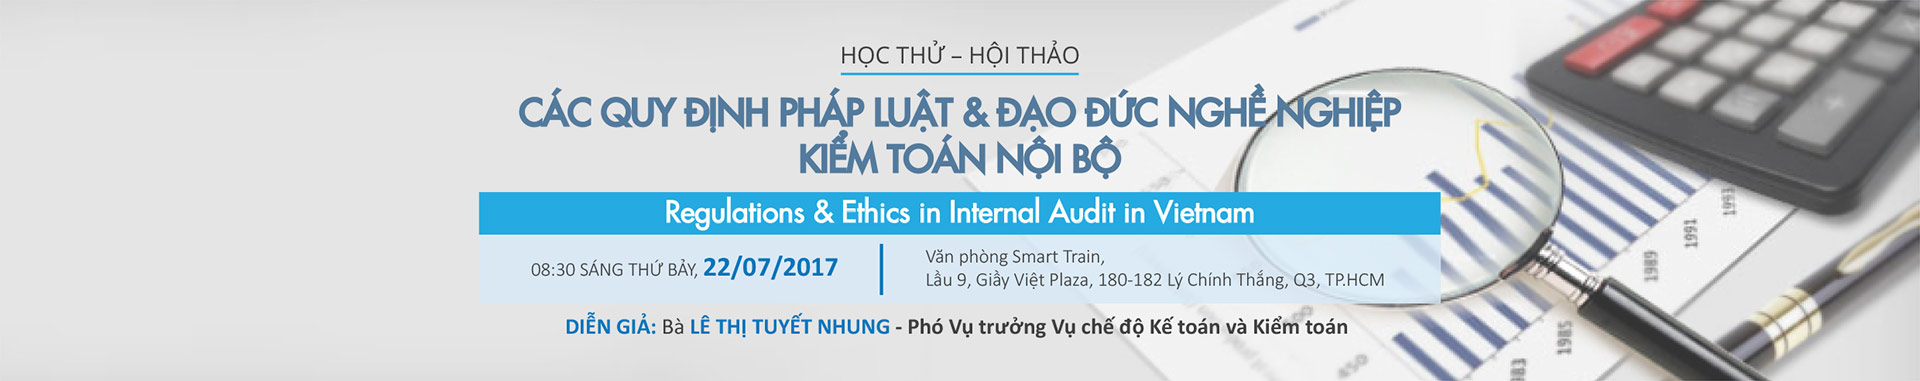 banner-web-ht-cac-quy-dinh-phap-luat-dao-duc